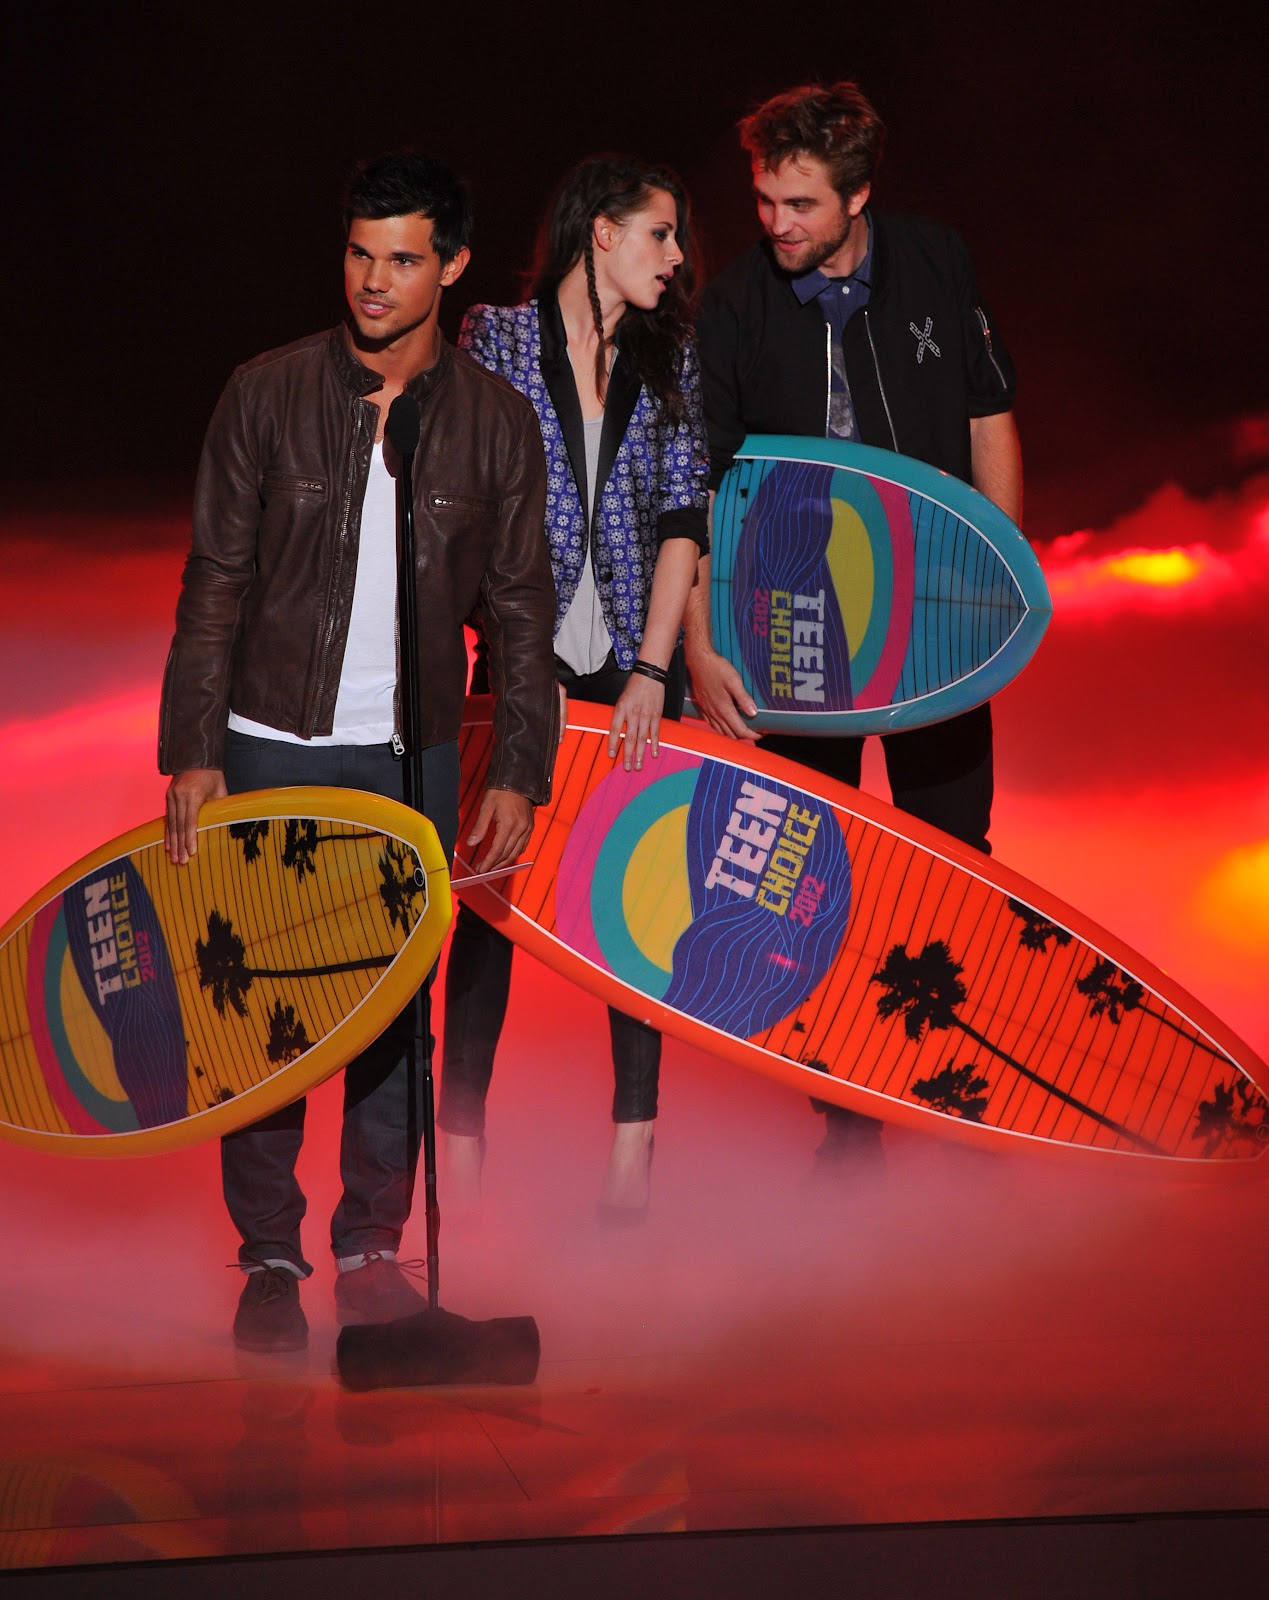 http://4.bp.blogspot.com/-3jhYous-6ms/UAzJUTVlDbI/AAAAAAAAJjw/-G6AvFxCv90/s1600/Kristen-Stewart-Robert-Pattinson-Pictures-2012-Teen-Choice-Awards+5.jpg